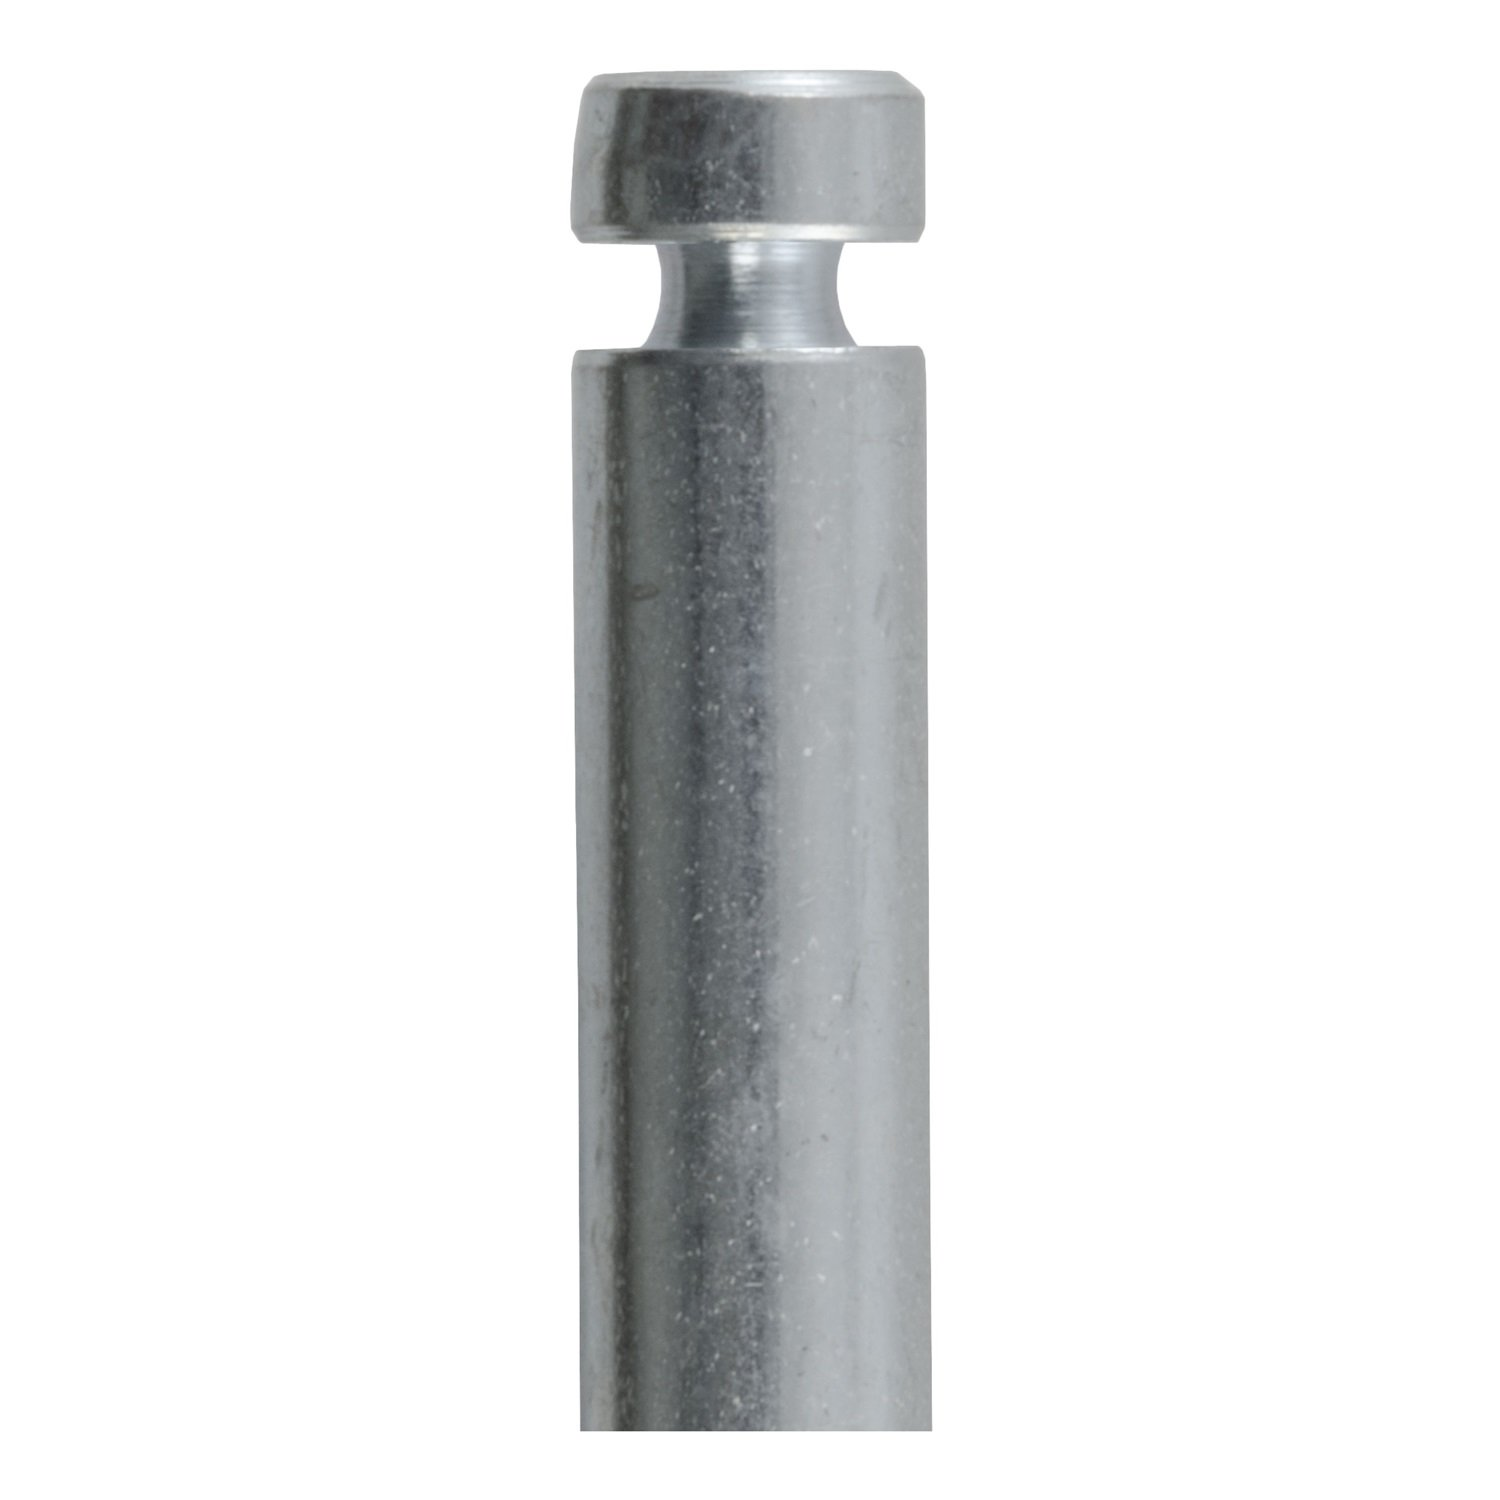 CURT 21404 Trailer Hitch Pin /& Clip with Grooved Head Fits 1-1//4-Inch Receiver 1//2-Inch Pin Diameter